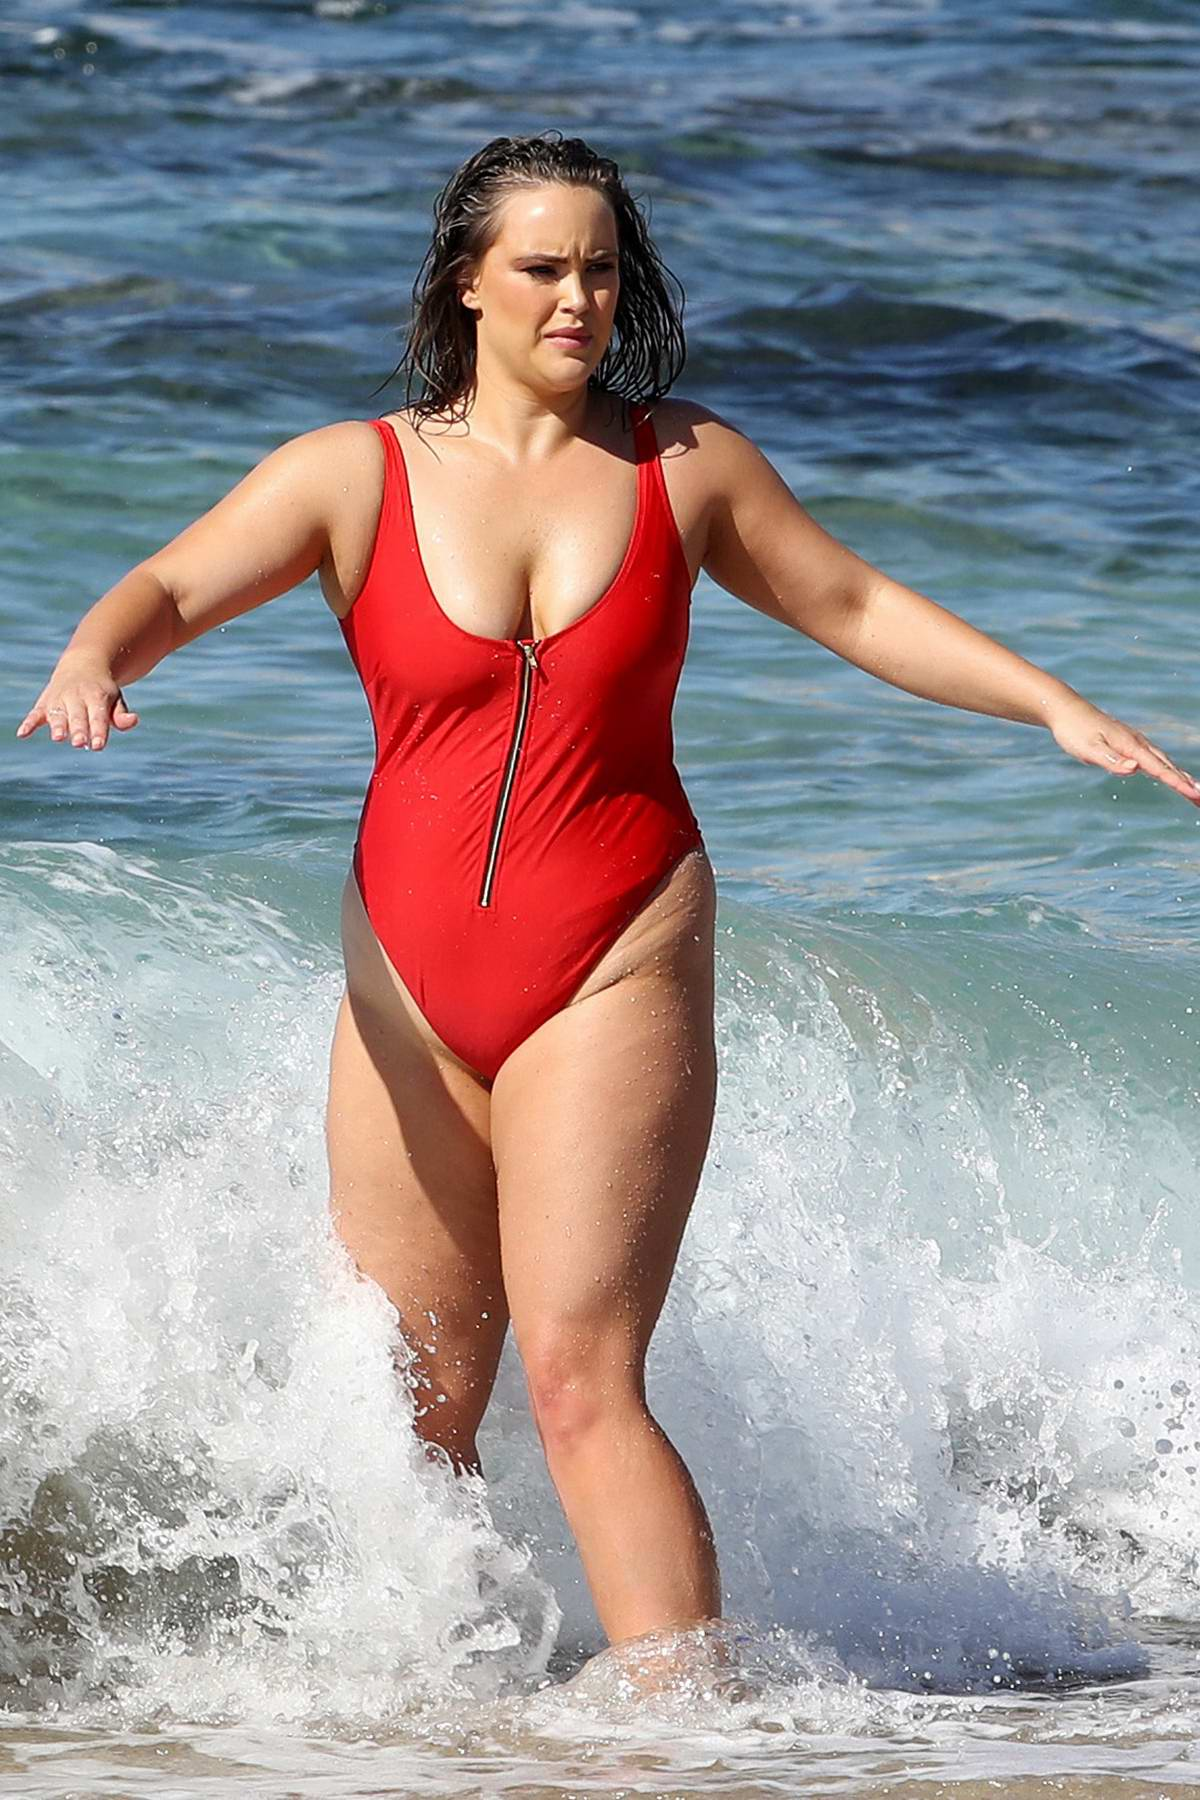 Sophia Brennan poses in a red swimsuit for a swimwear photoshoot at the beach in Sydney, Australia